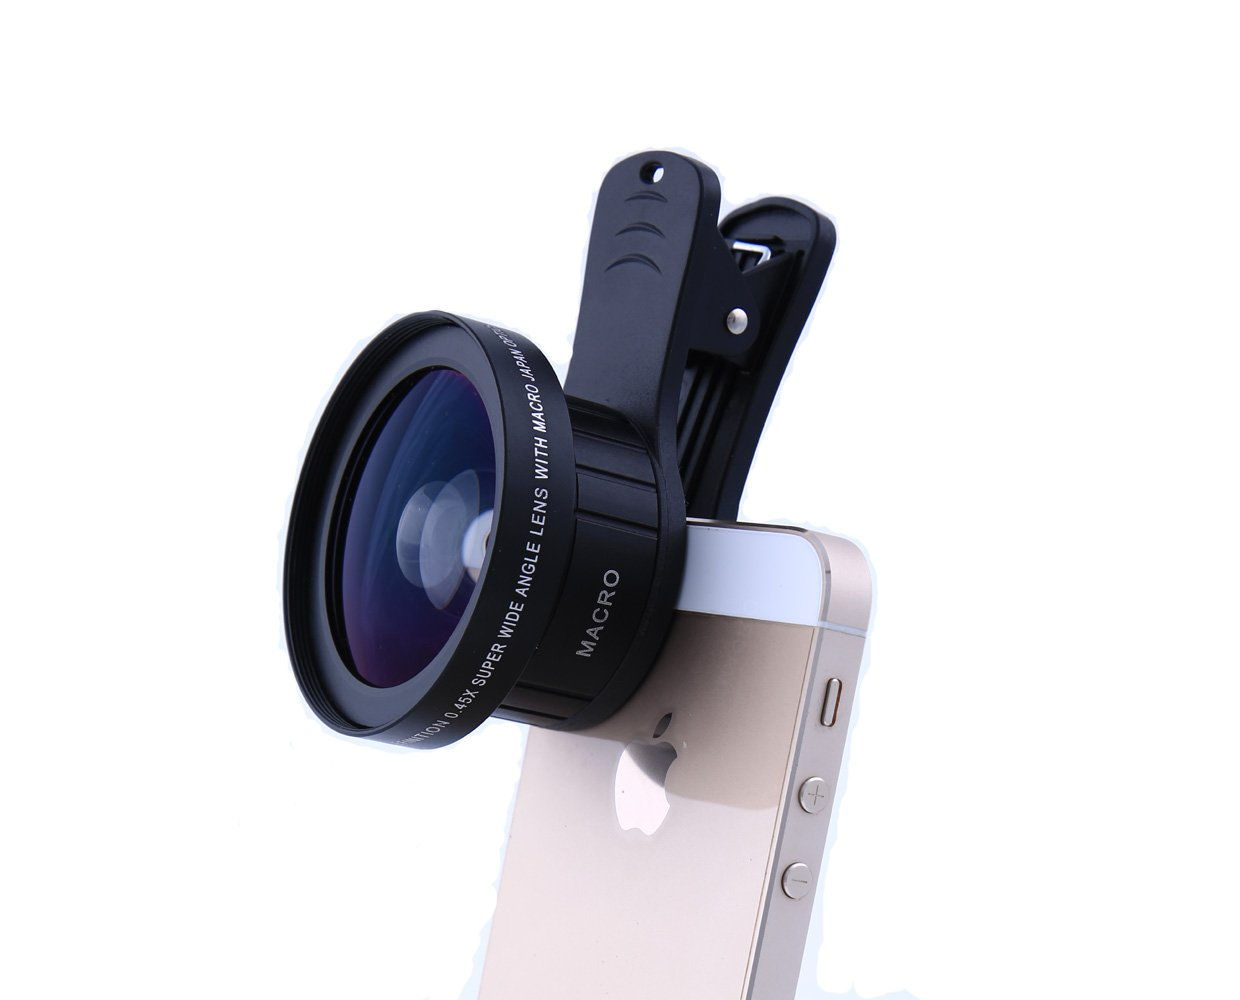 AZlife Phone Camera Lens, Clip on Cell Phone for iPhone Samsung Smartphones (0.45x Super Wide Angle Lens, 12.0x Super Macro Lens)